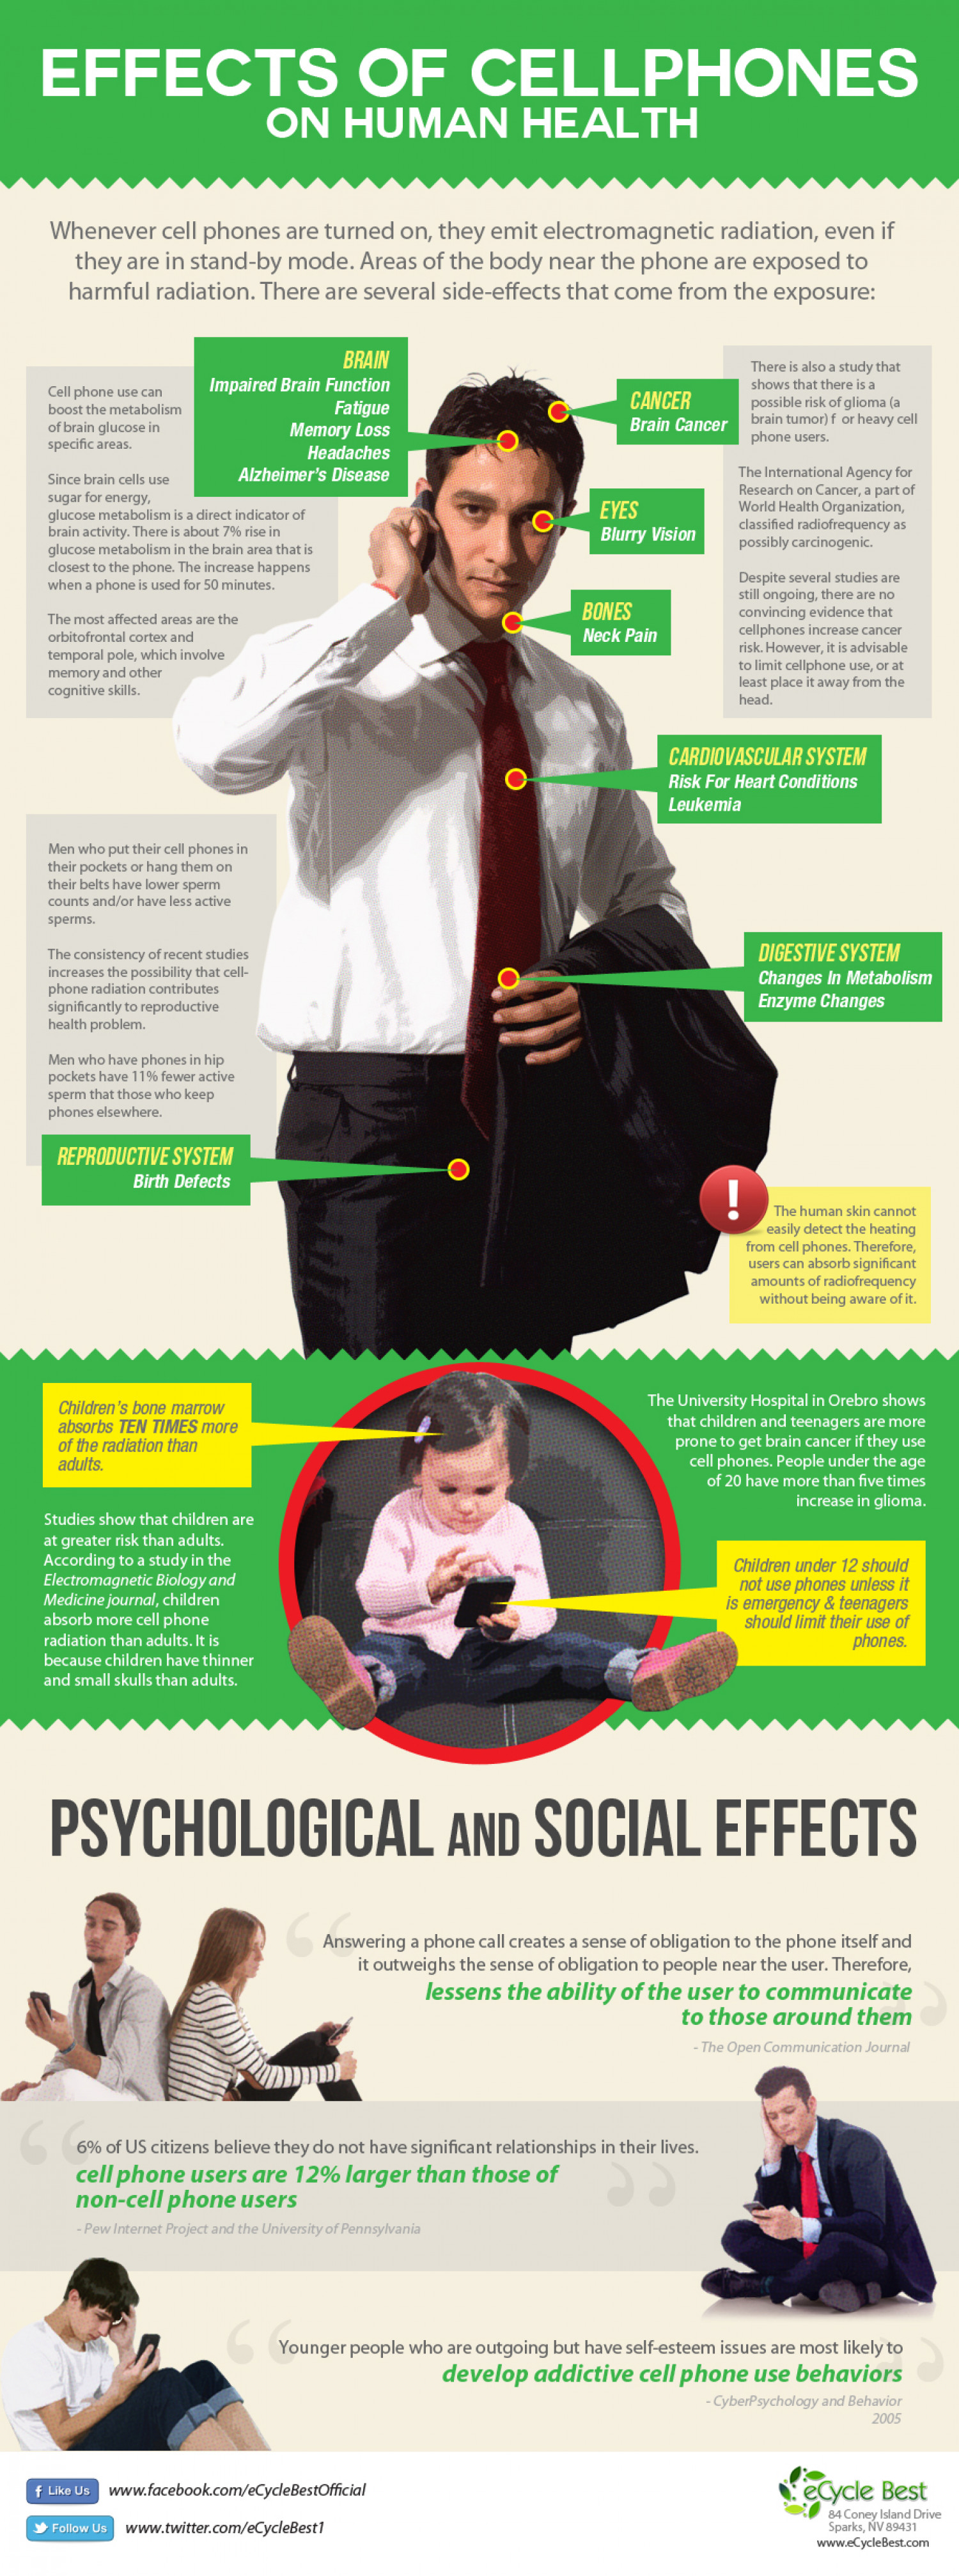 Effects of Cell Phones on Human Health Infographic